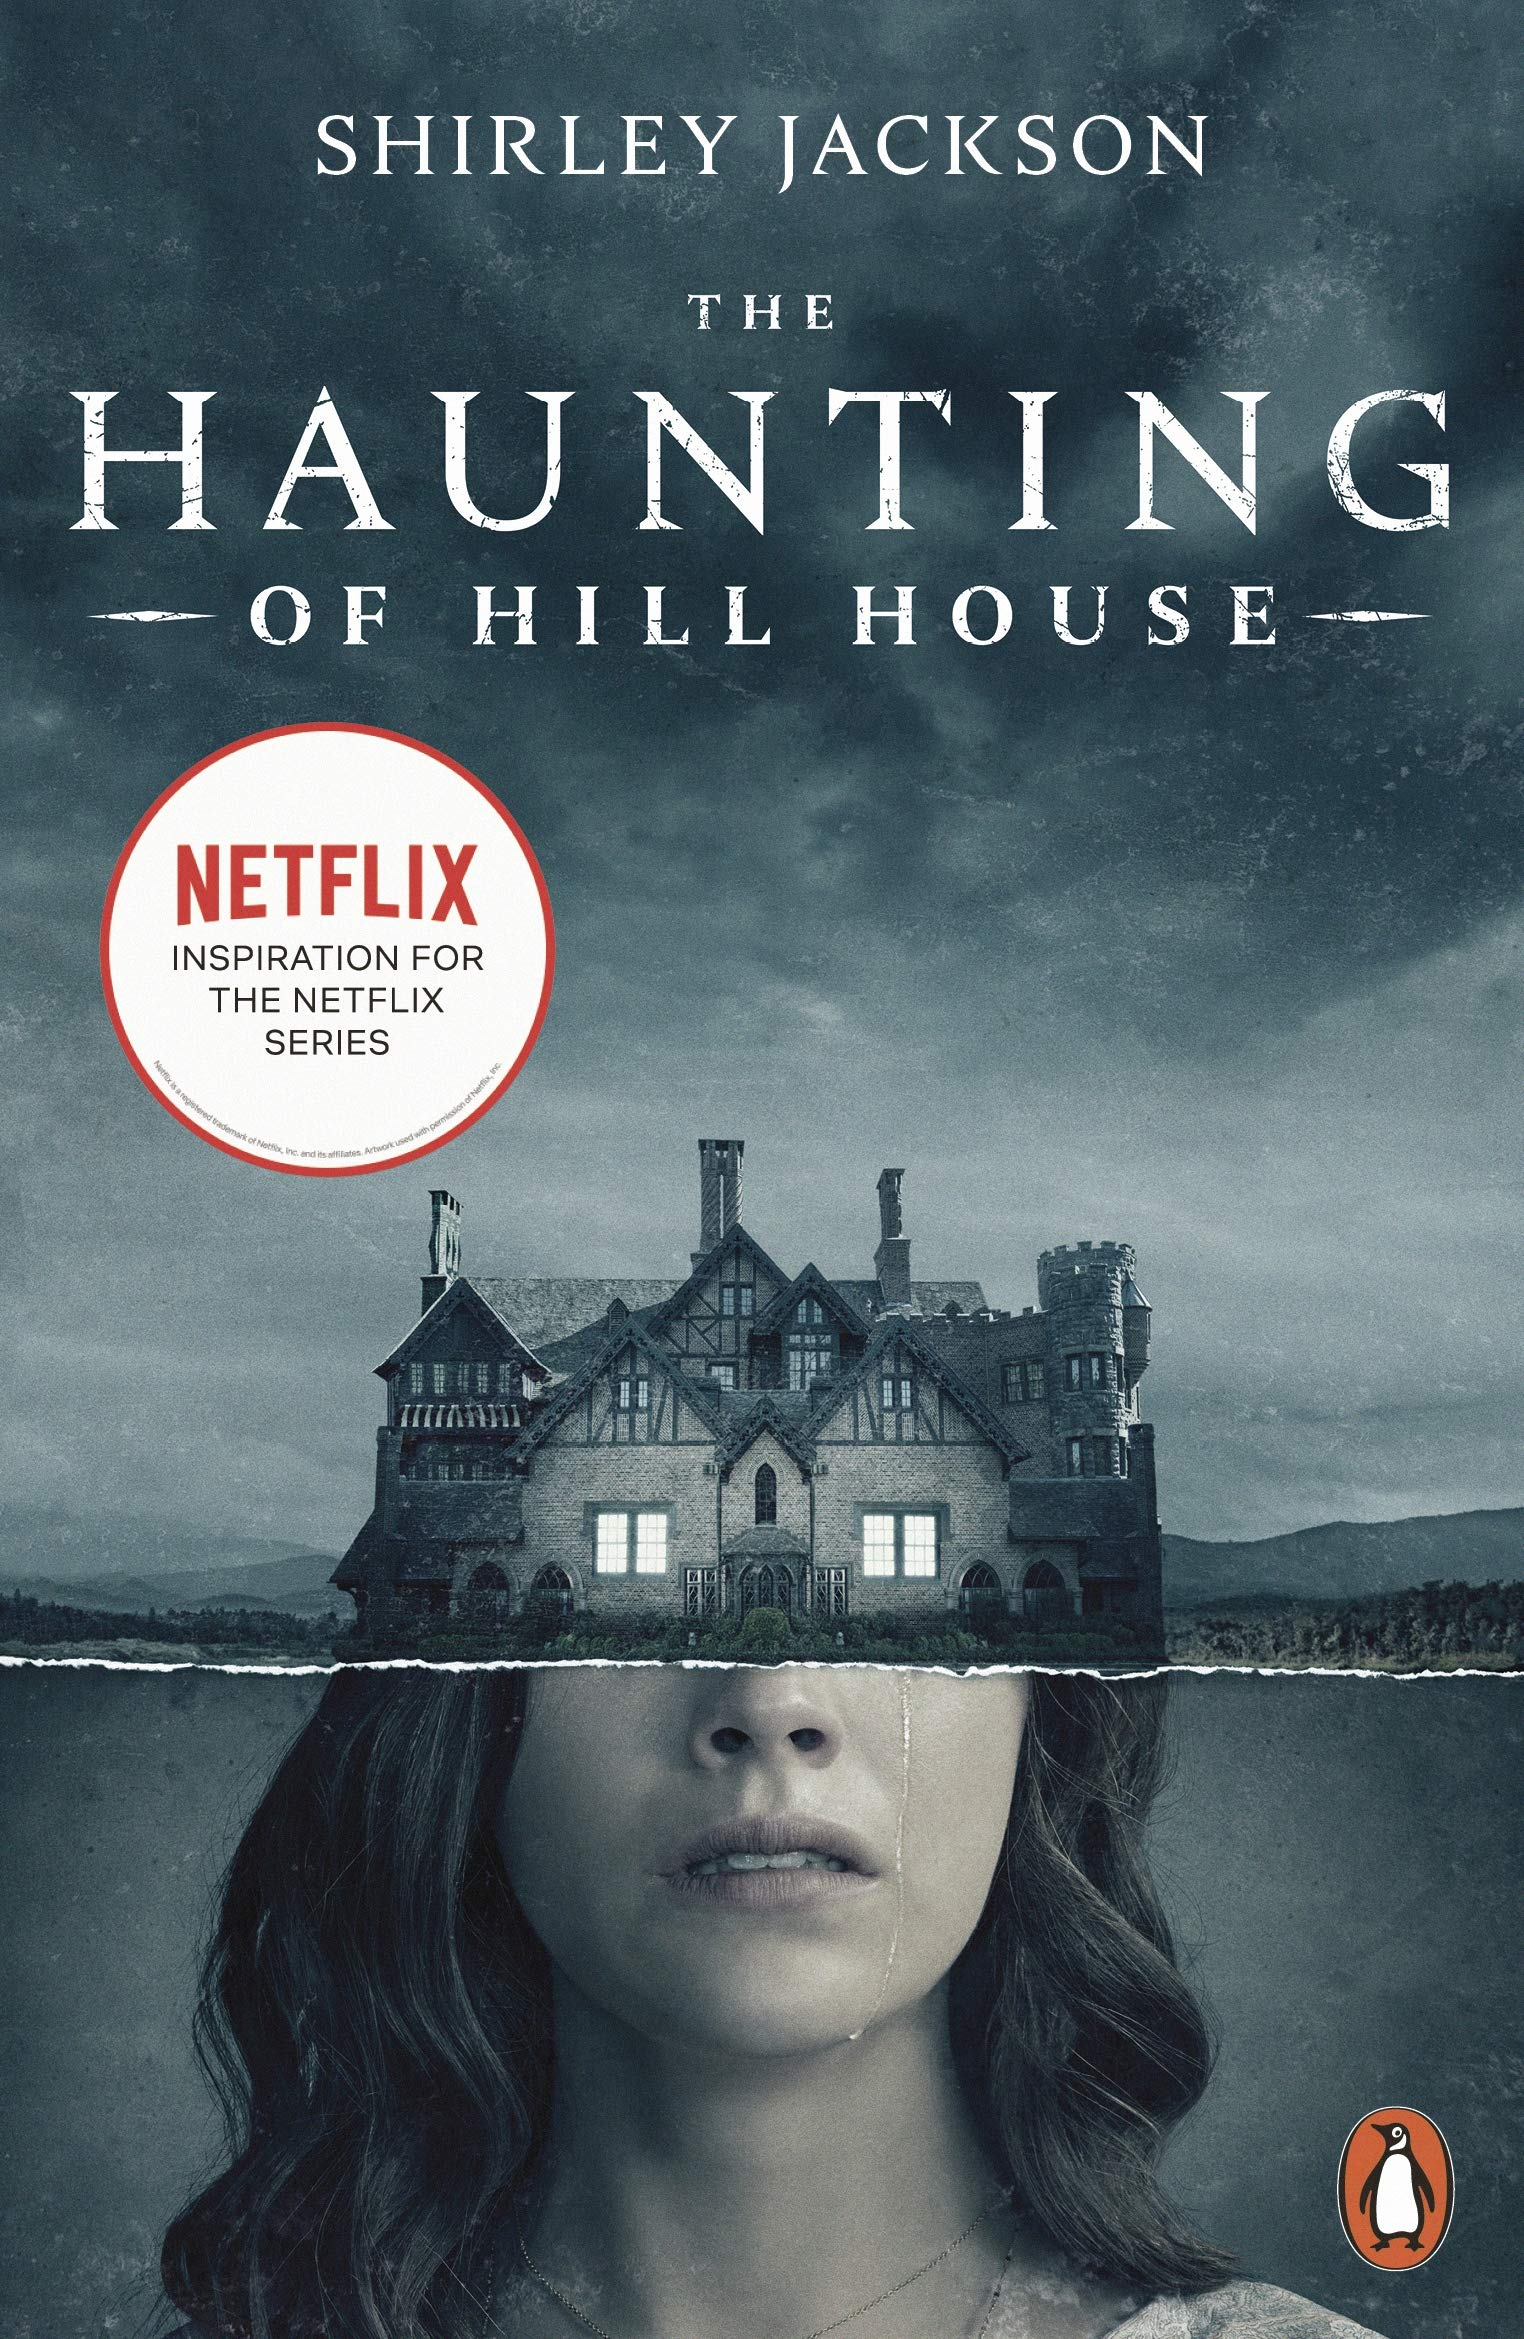 The Haunting Of Hill House Now The Inspiration For A New Netflix Original Series Jackson Shirley 9780241389690 Amazon Com Books